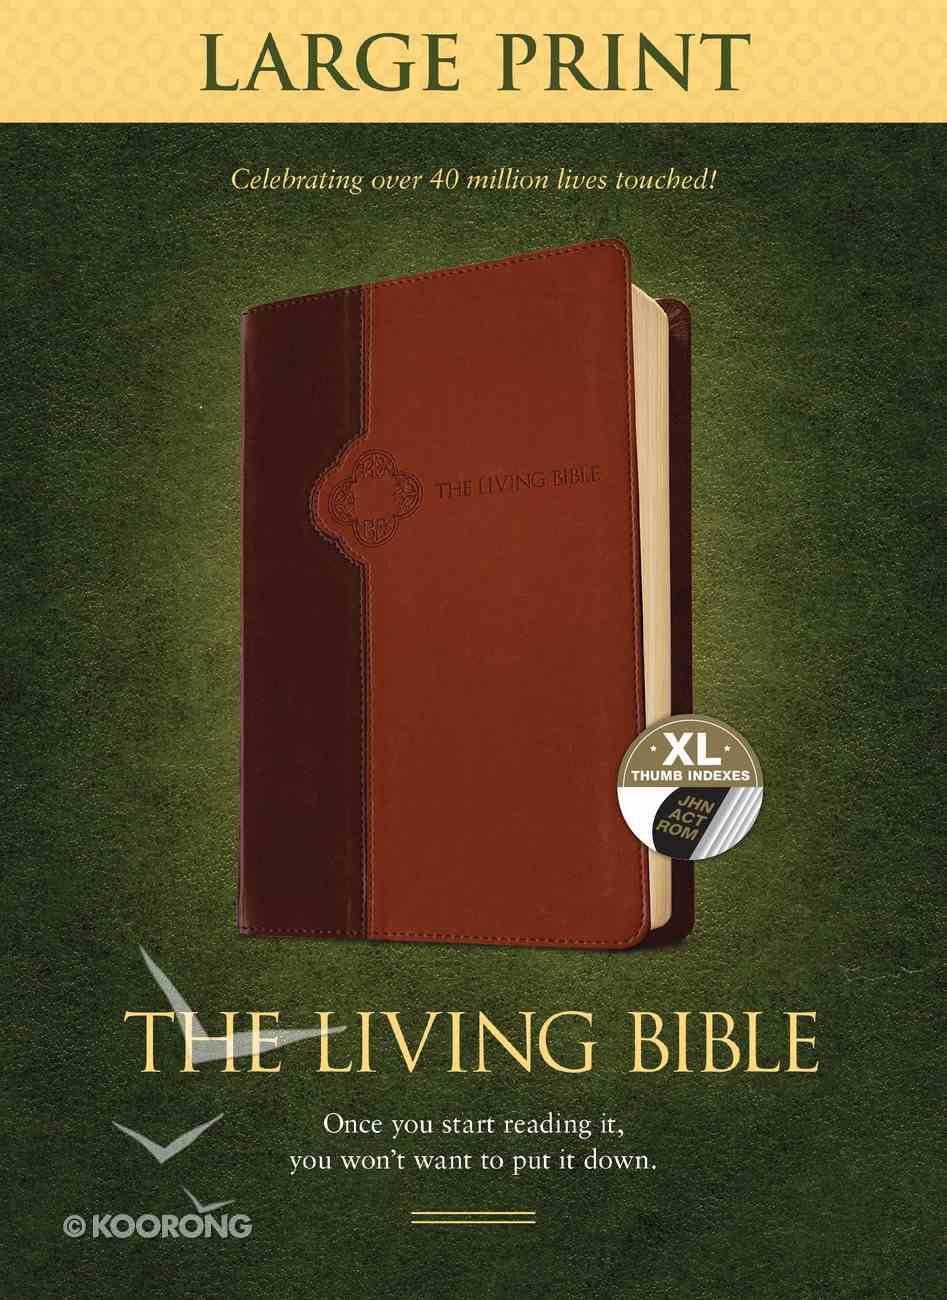 Lbp Living Bible Large Print Edition Brown/Tan Indexed (Black Letter Edition) Imitation Leather